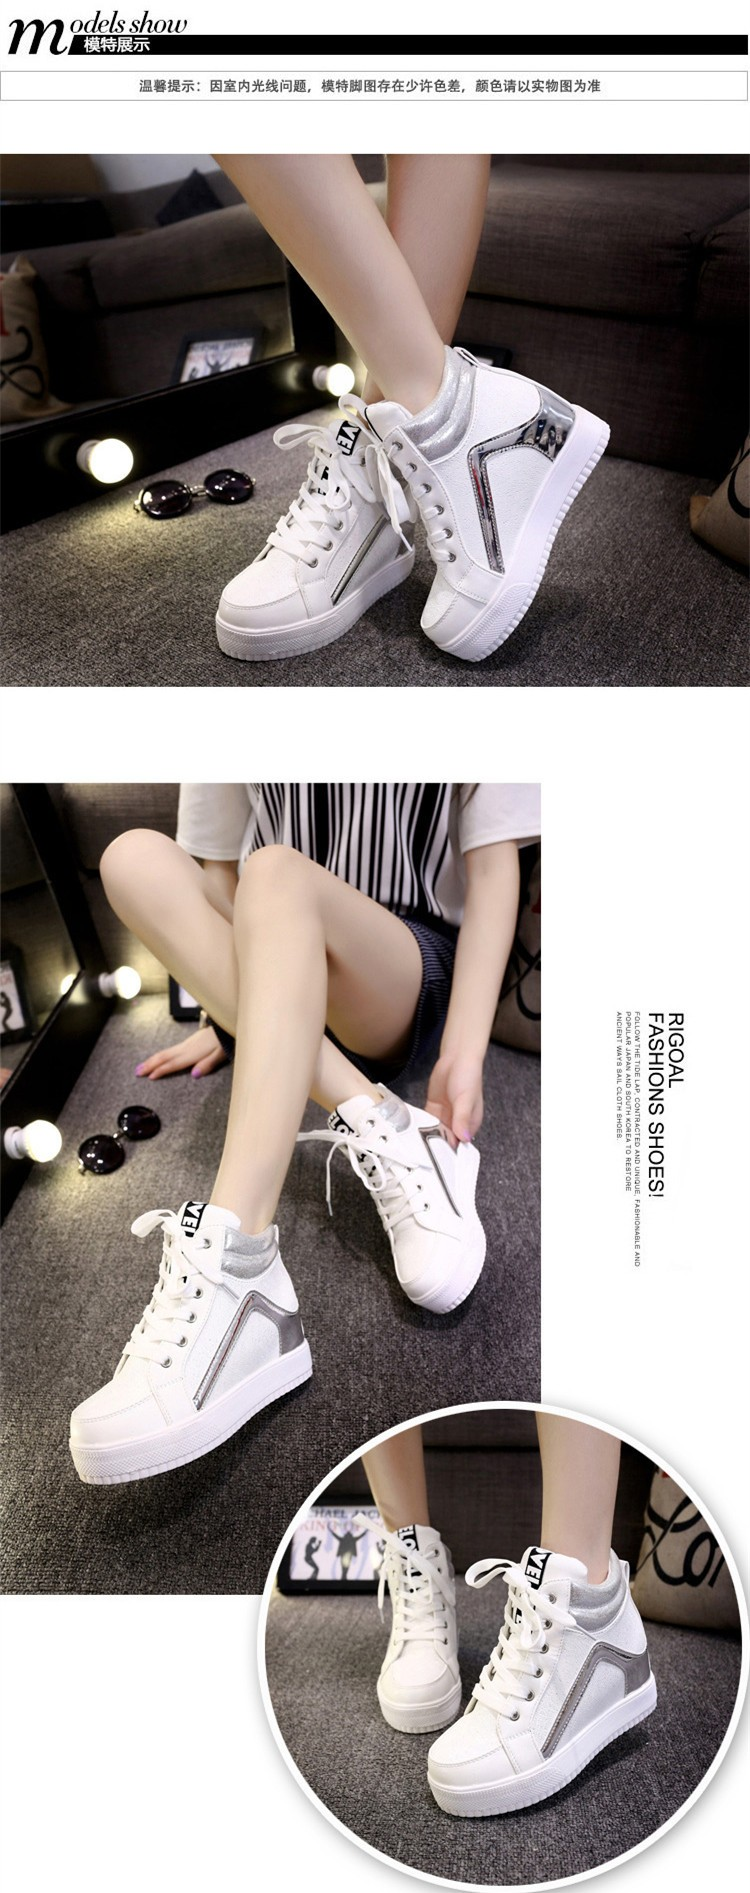 Height Increasing Women Casual Shoes 2015 High Top Mixed Colors Platform Ladies Shoes Breathable Lace Up Autumn Ankle Boots S28 (12)